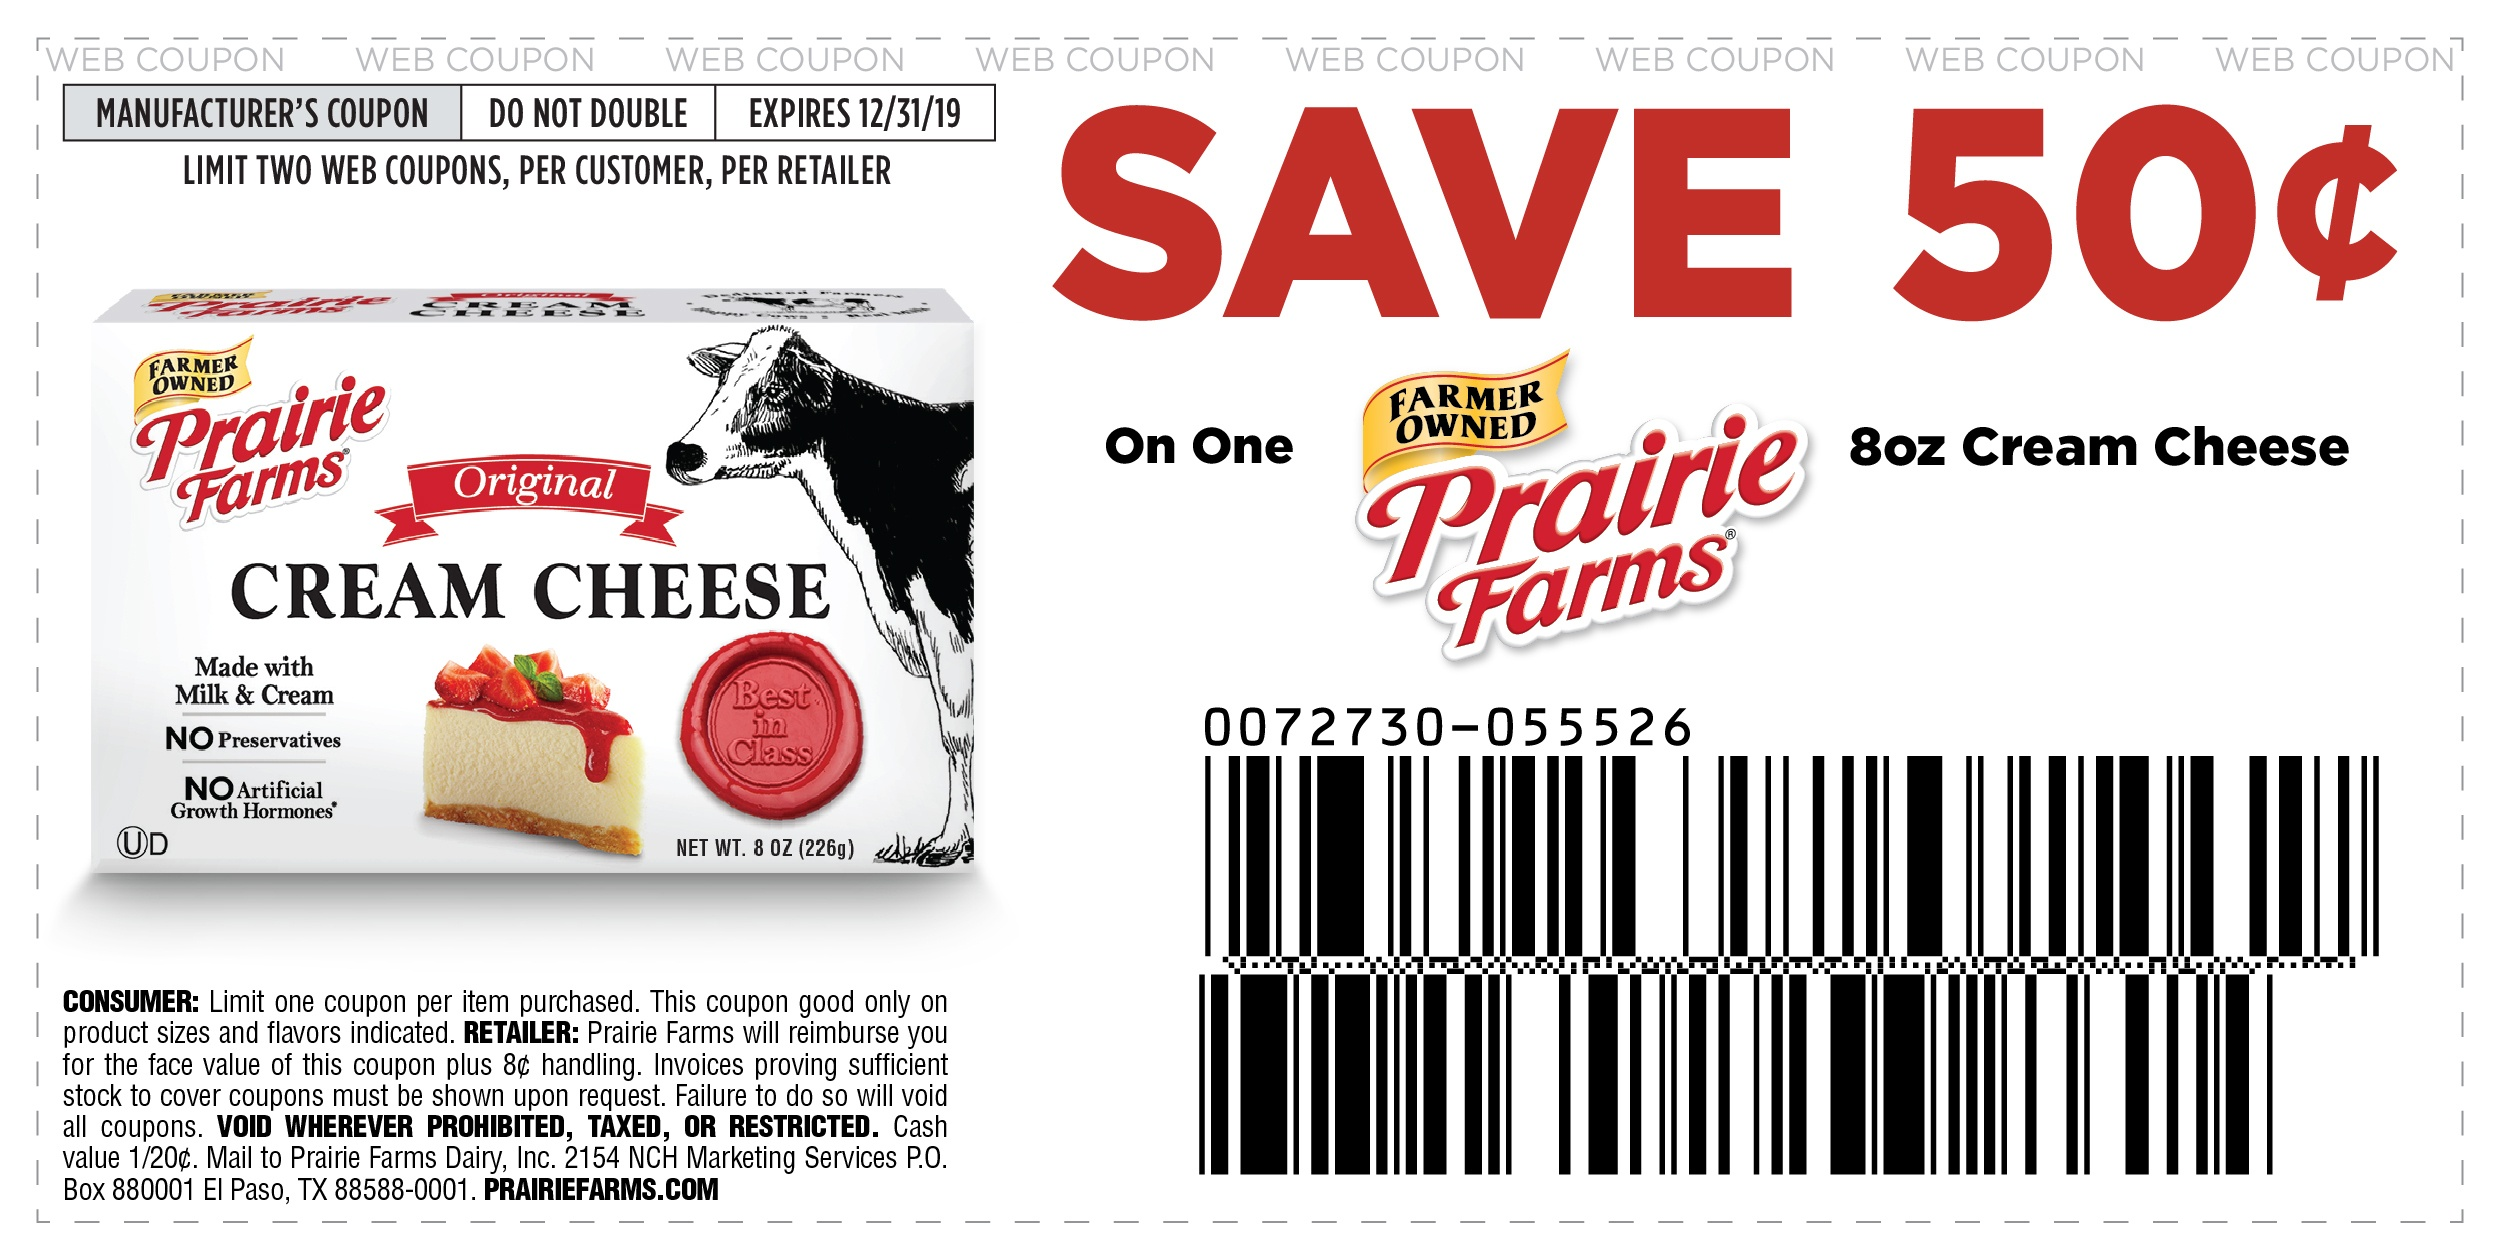 Prairie Farms Coupons, Save Now, Ice Cream, Cottage Cheese, More - Free Milk Coupons Printable